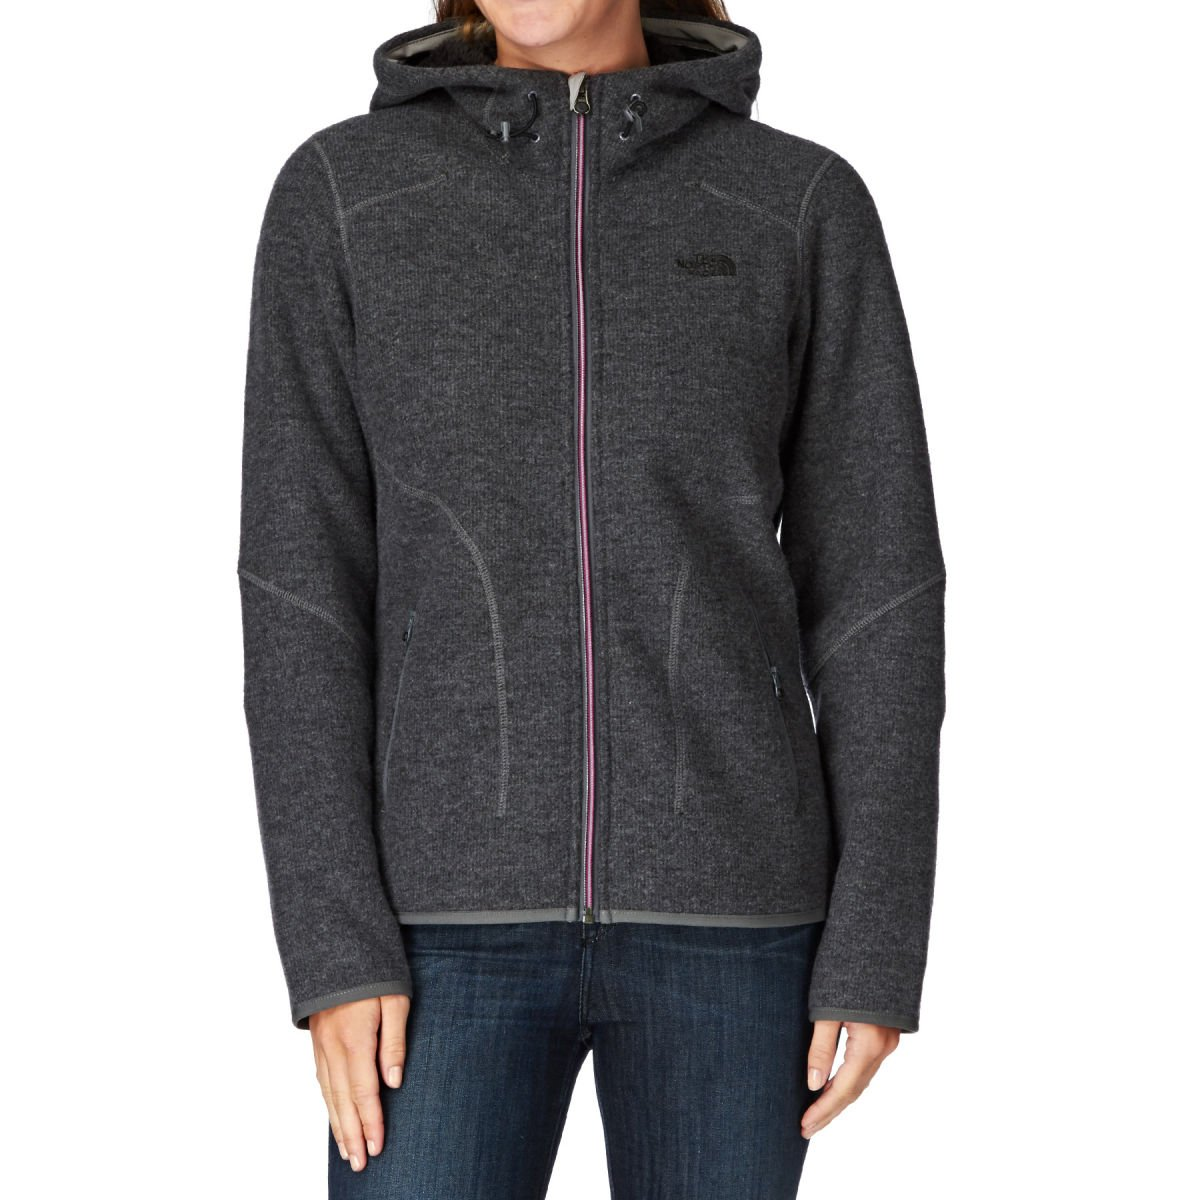 THE NORTH FACE Damen Fleecejacke Zermatt Full Zip Hoodie